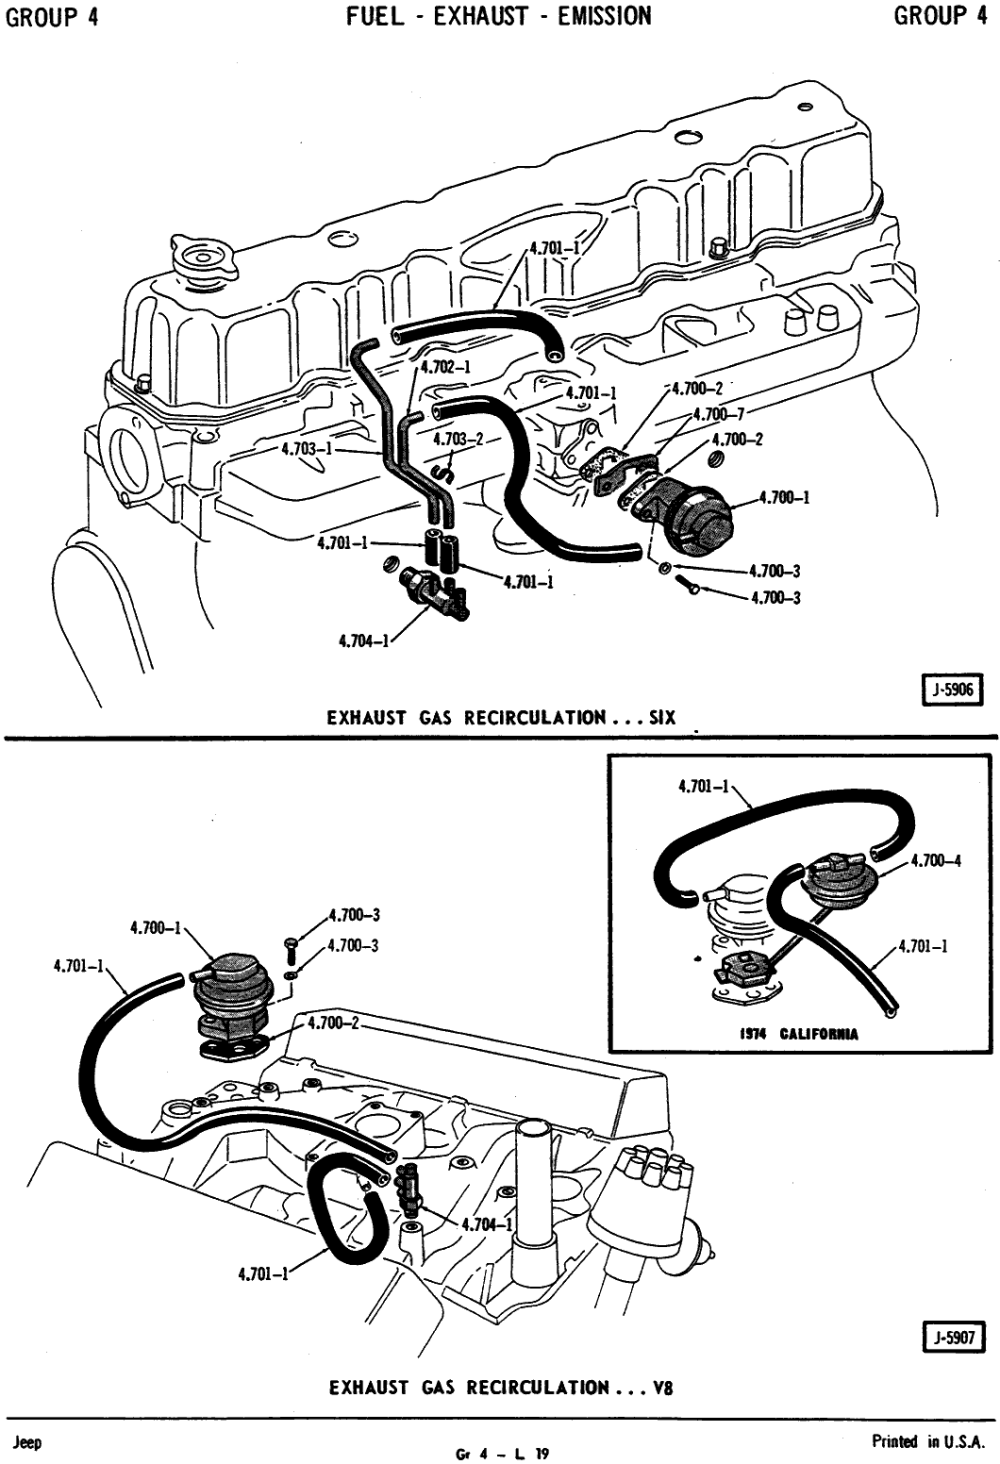 medium resolution of 1994 jeep wrangler engine diagram wiring diagram portal 1988 jeep wrangler engine options 1988 jeep wrangler engine diagram